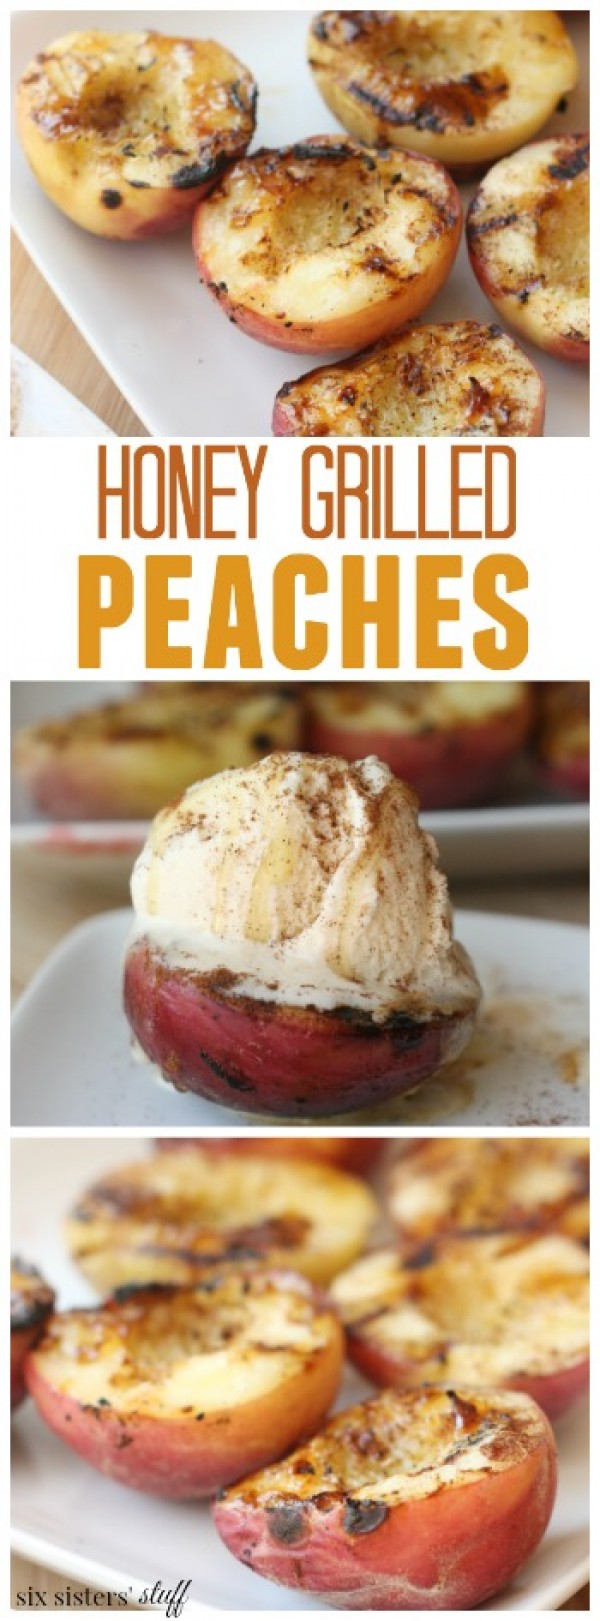 Get the recipe Honey Grilled Peaches @recipes_to_go